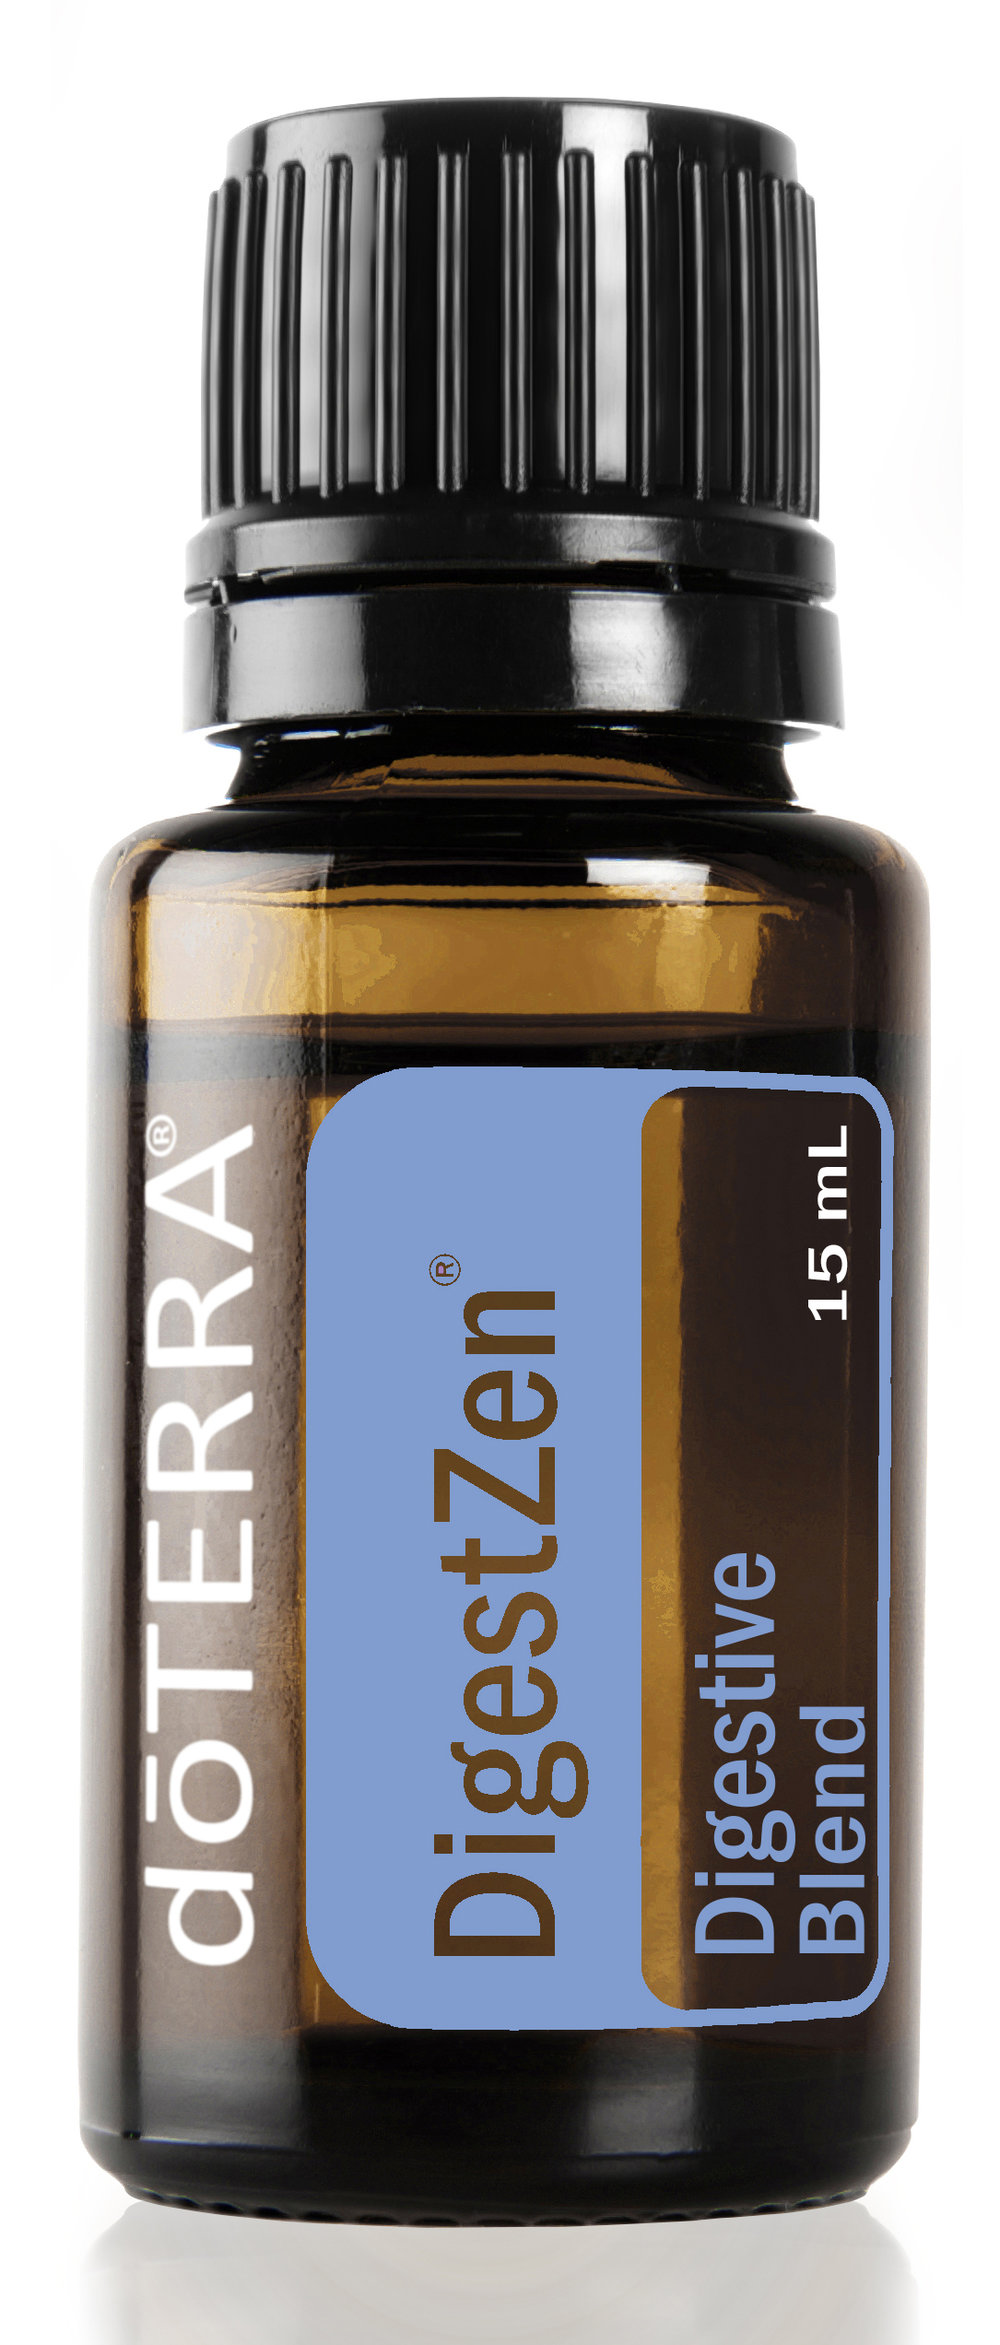 Challenged with tummy and digestive issues? - Try this essential oil blend.